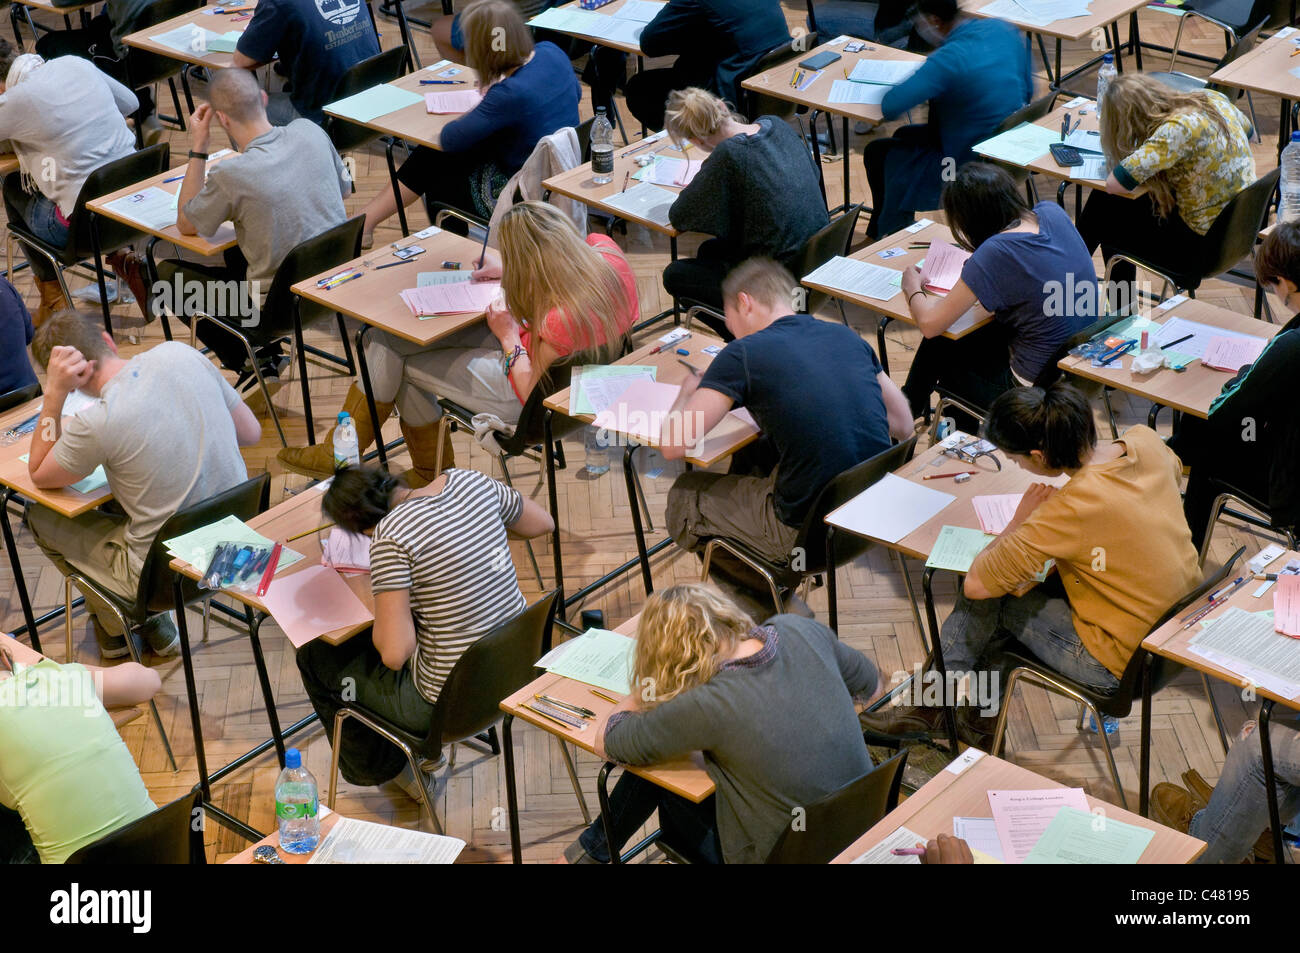 University students from King's College London, sitting exams - Stock Image